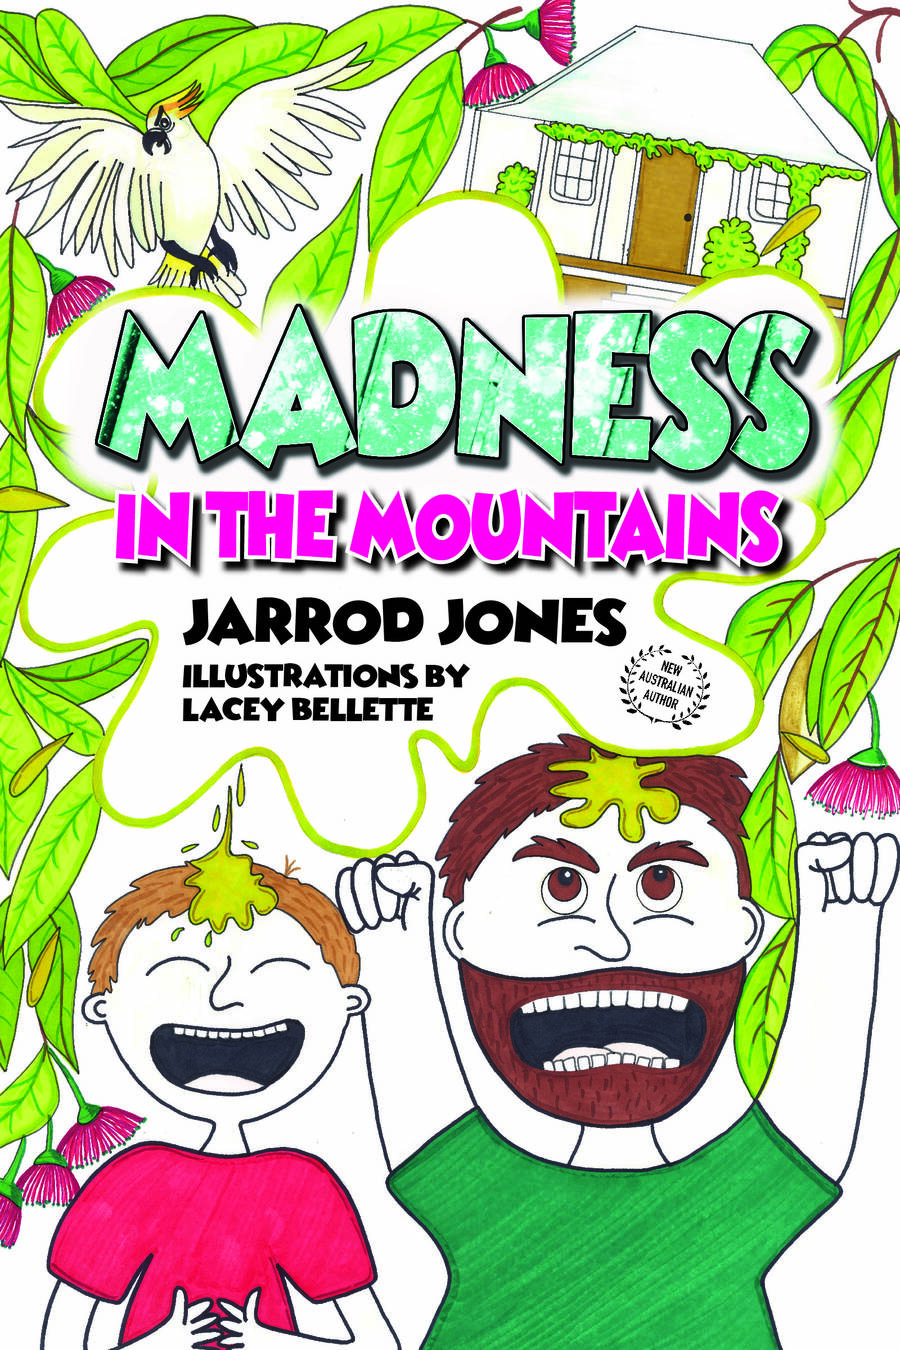 Madness in the Mountains